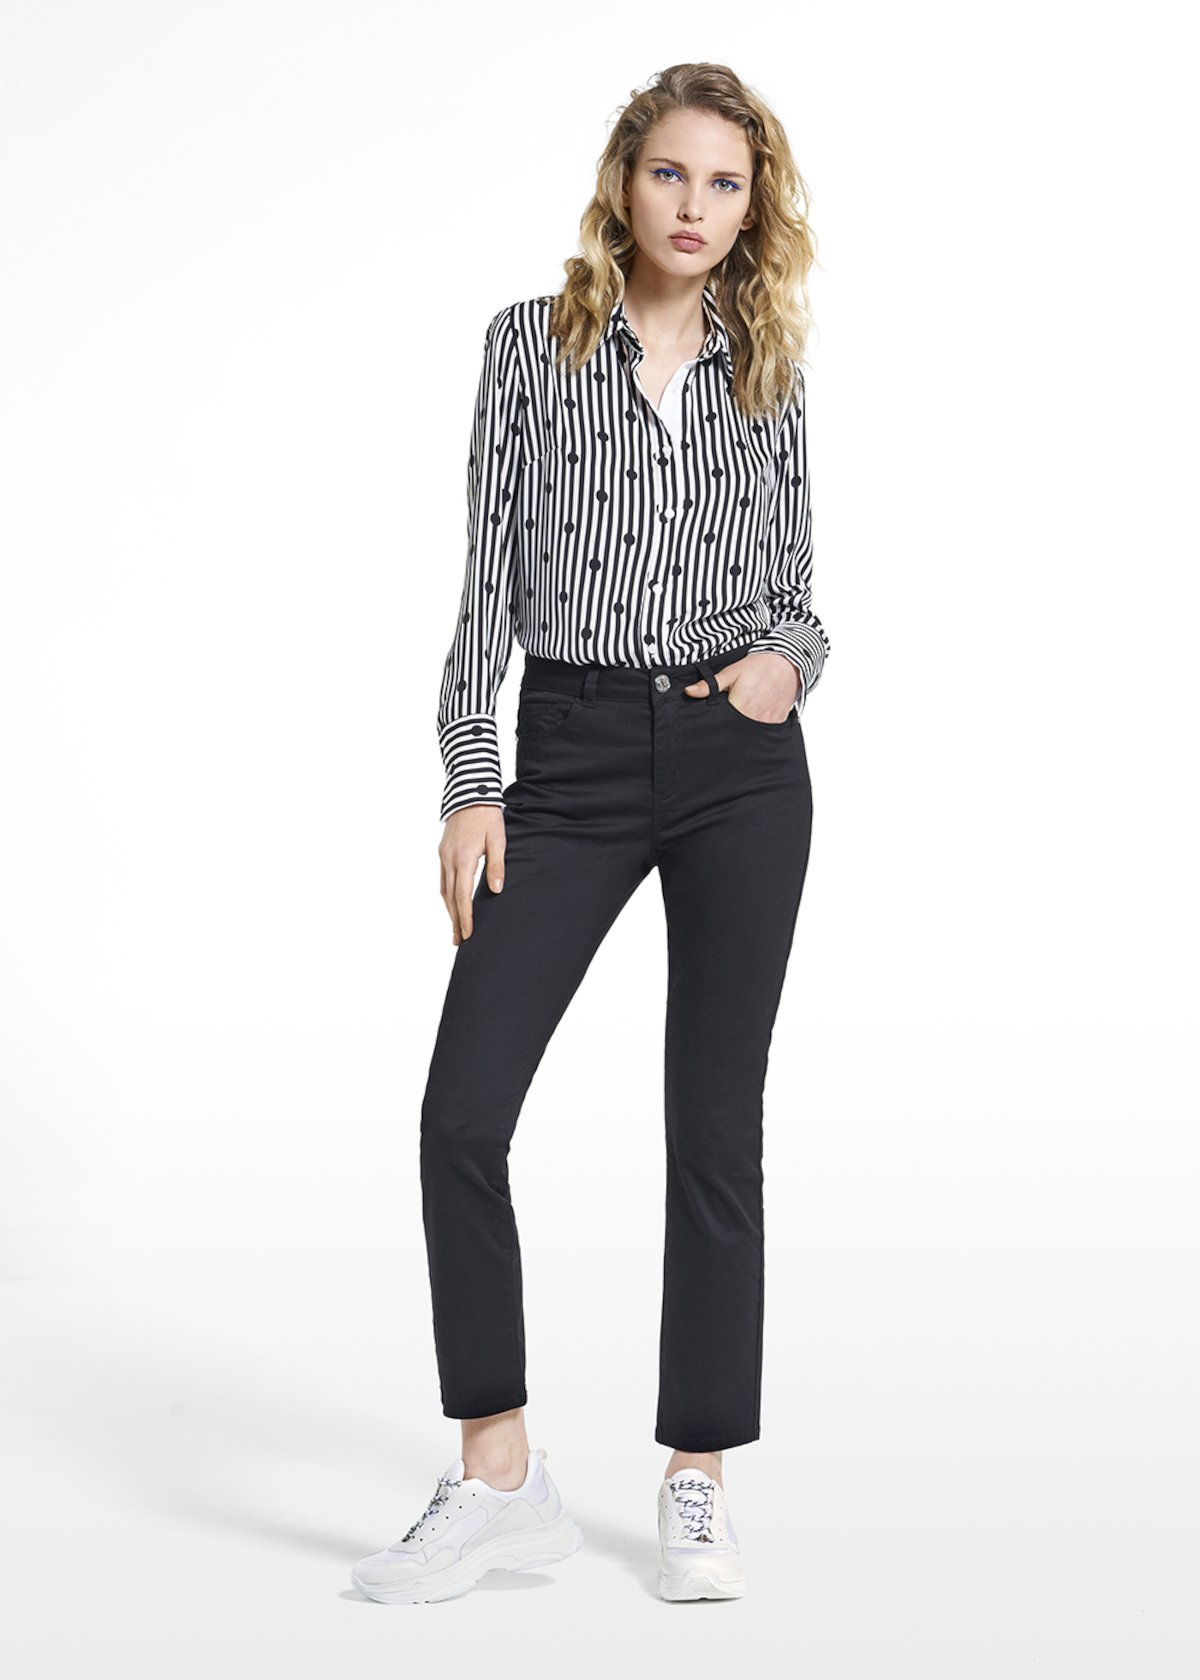 Long-sleeved patterned blouse Carla - White / Black Stripes - Woman